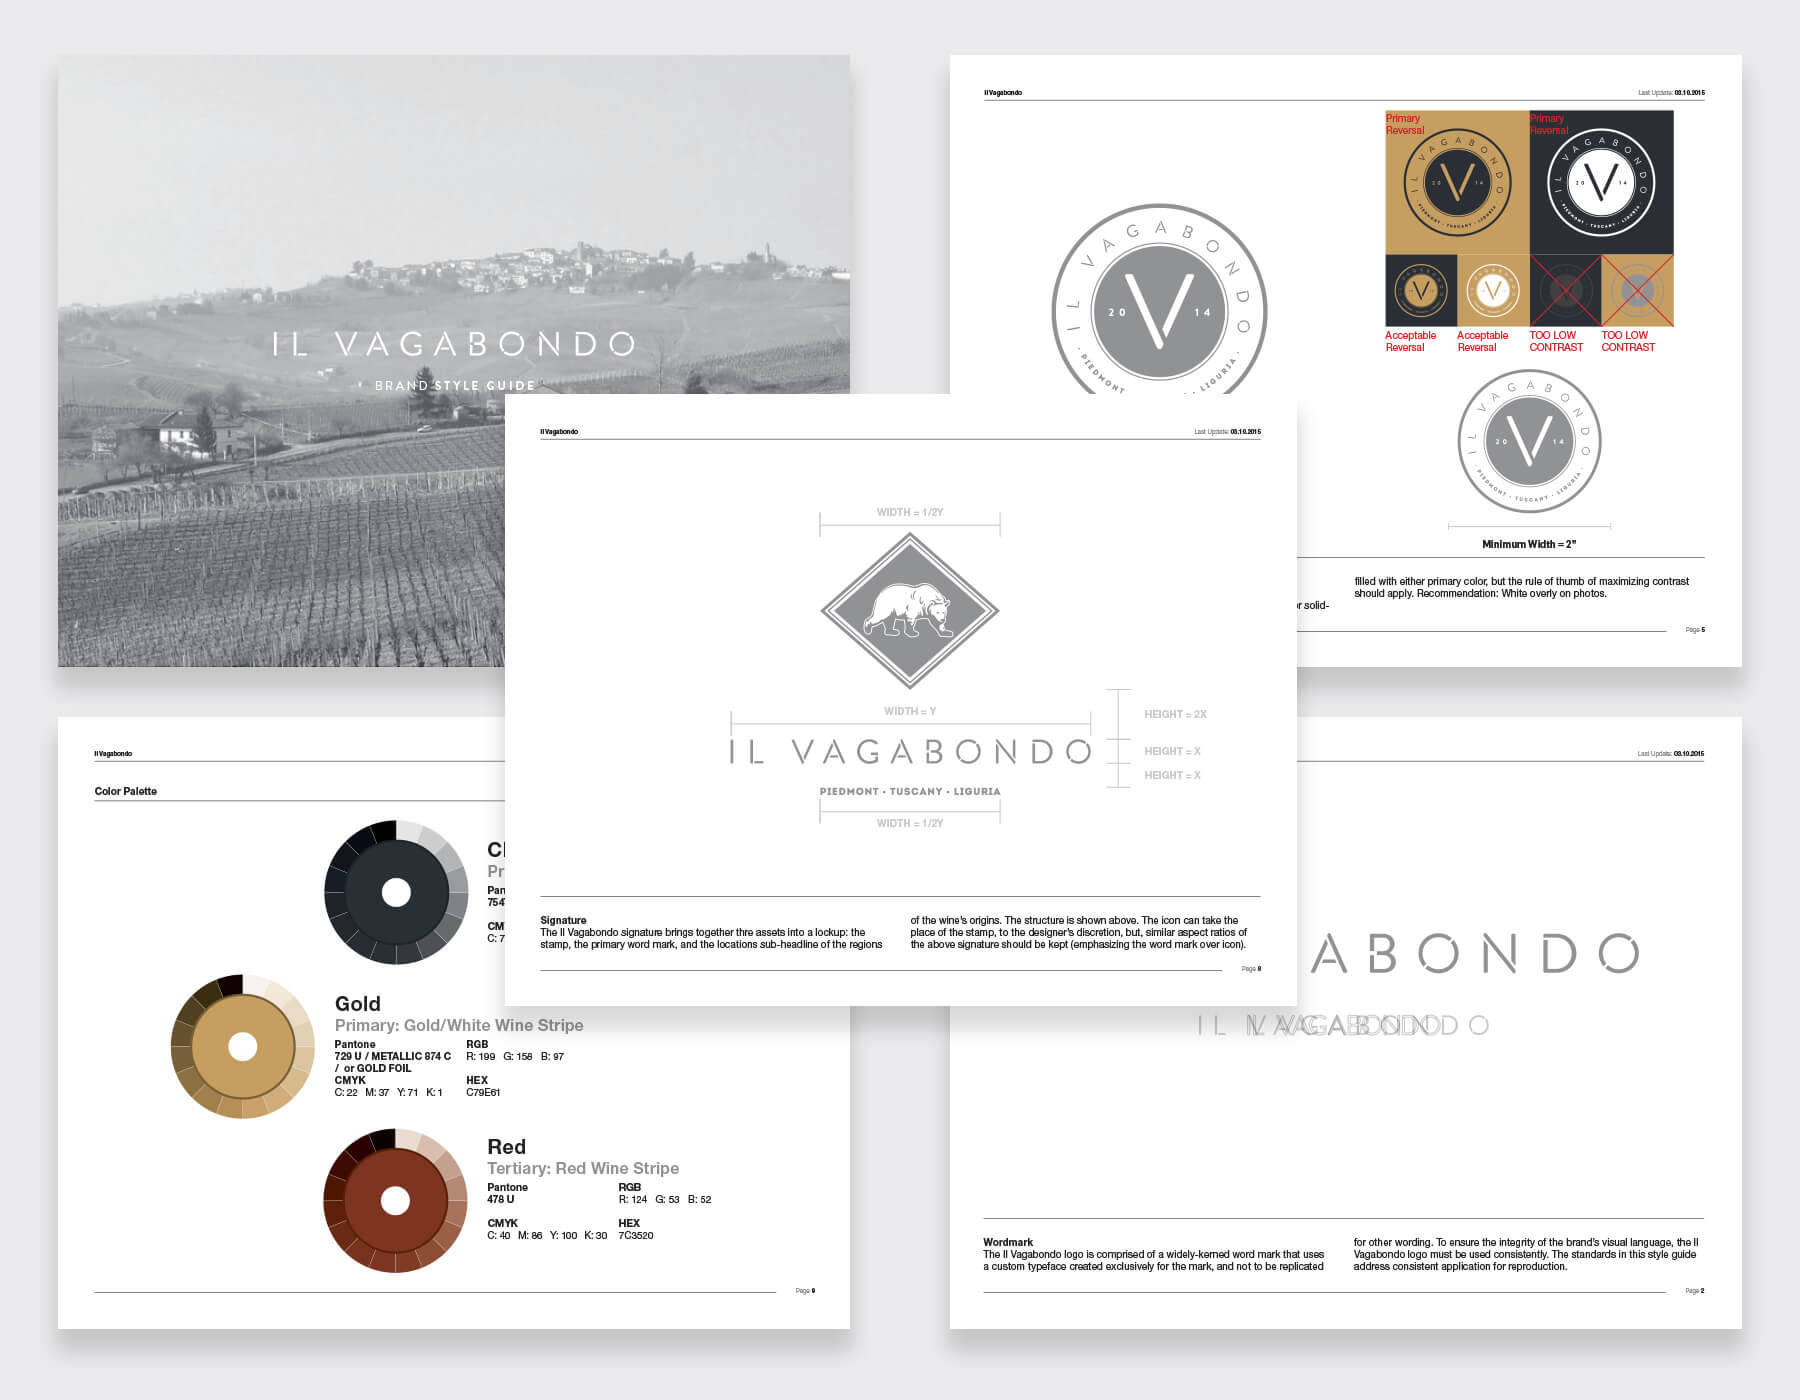 Brand style guidelines for Il Vagabondo, showing guides for color and logo use